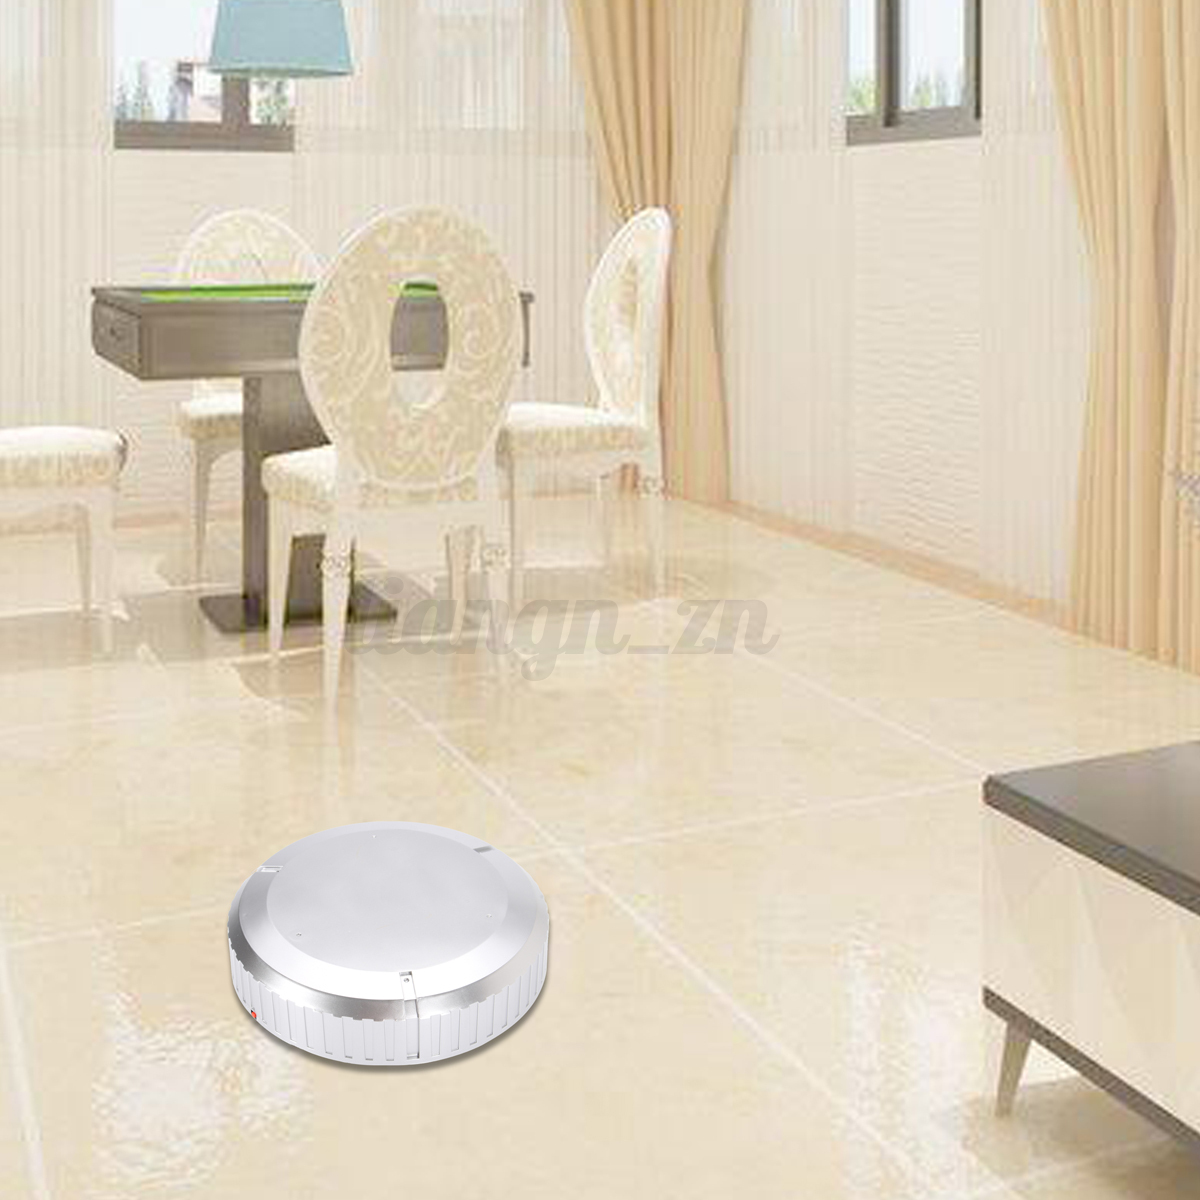 smart aspirateur robot vacuum sans fil auto nettoyeur poussi re balayeuse maison ebay. Black Bedroom Furniture Sets. Home Design Ideas